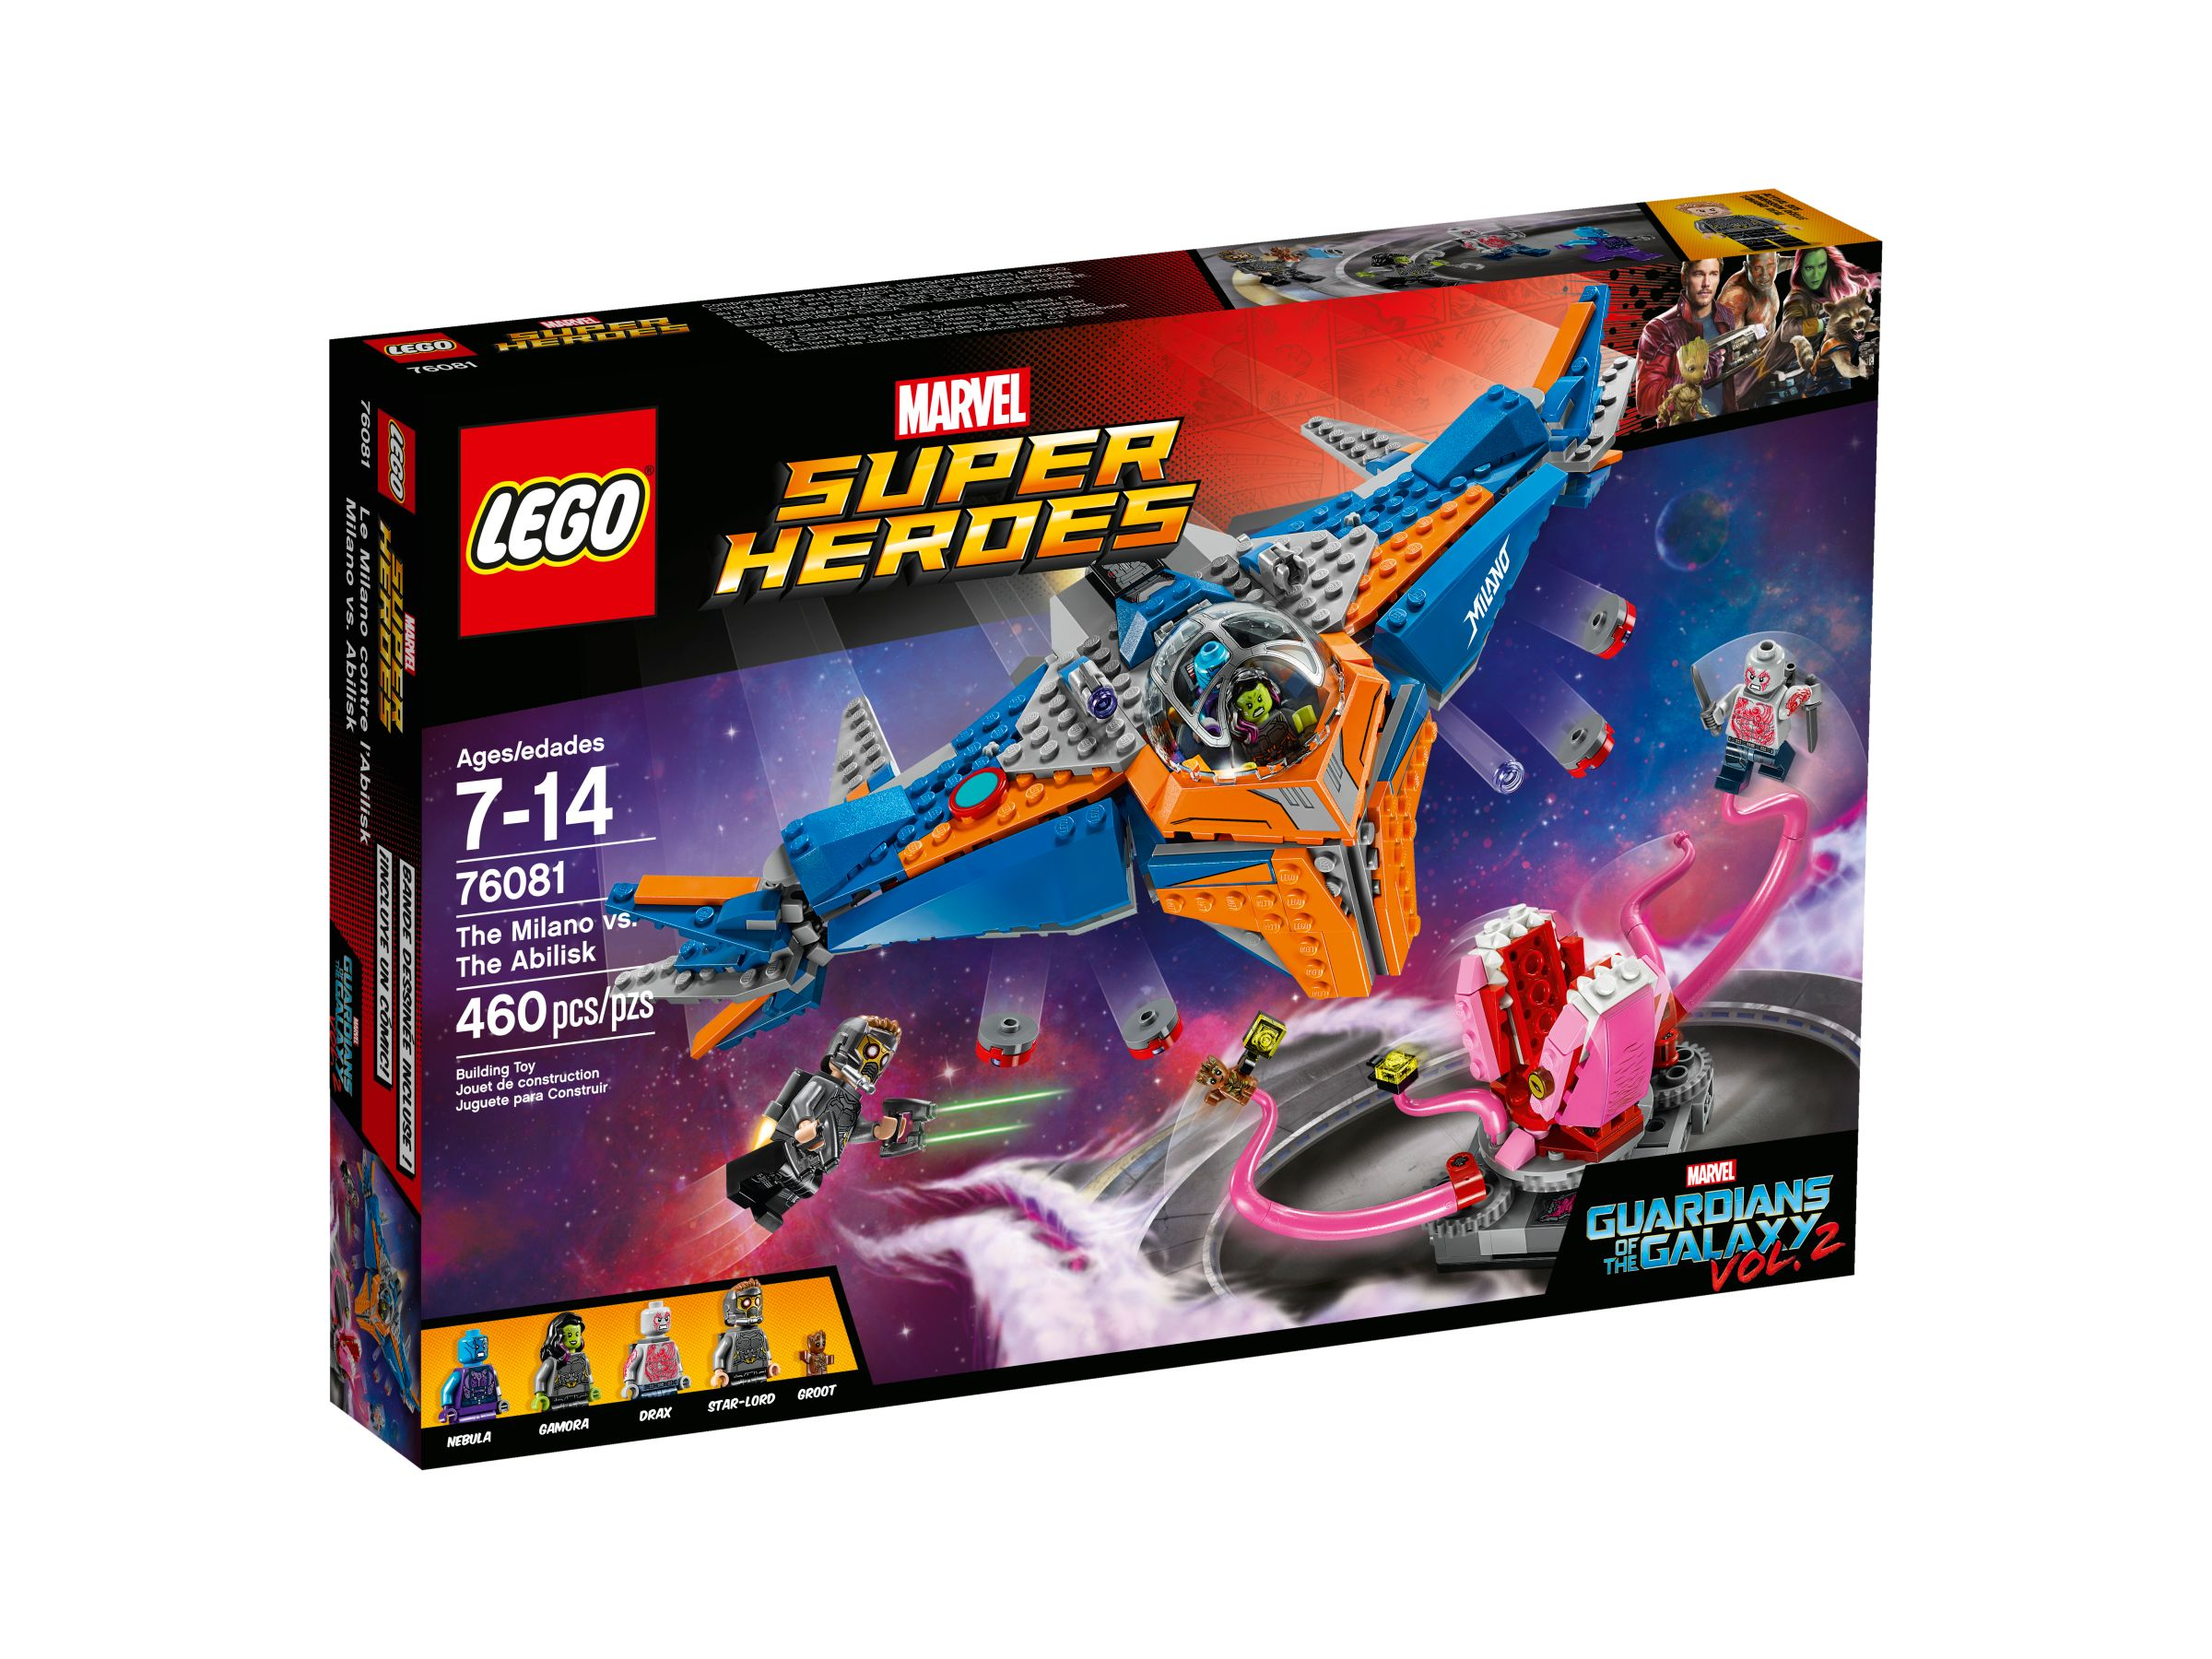 LEGO Super Heroes 76081 Guardians of the Galaxy - The Milano vs. The Abilisk LEGO_76081_alt1.jpg